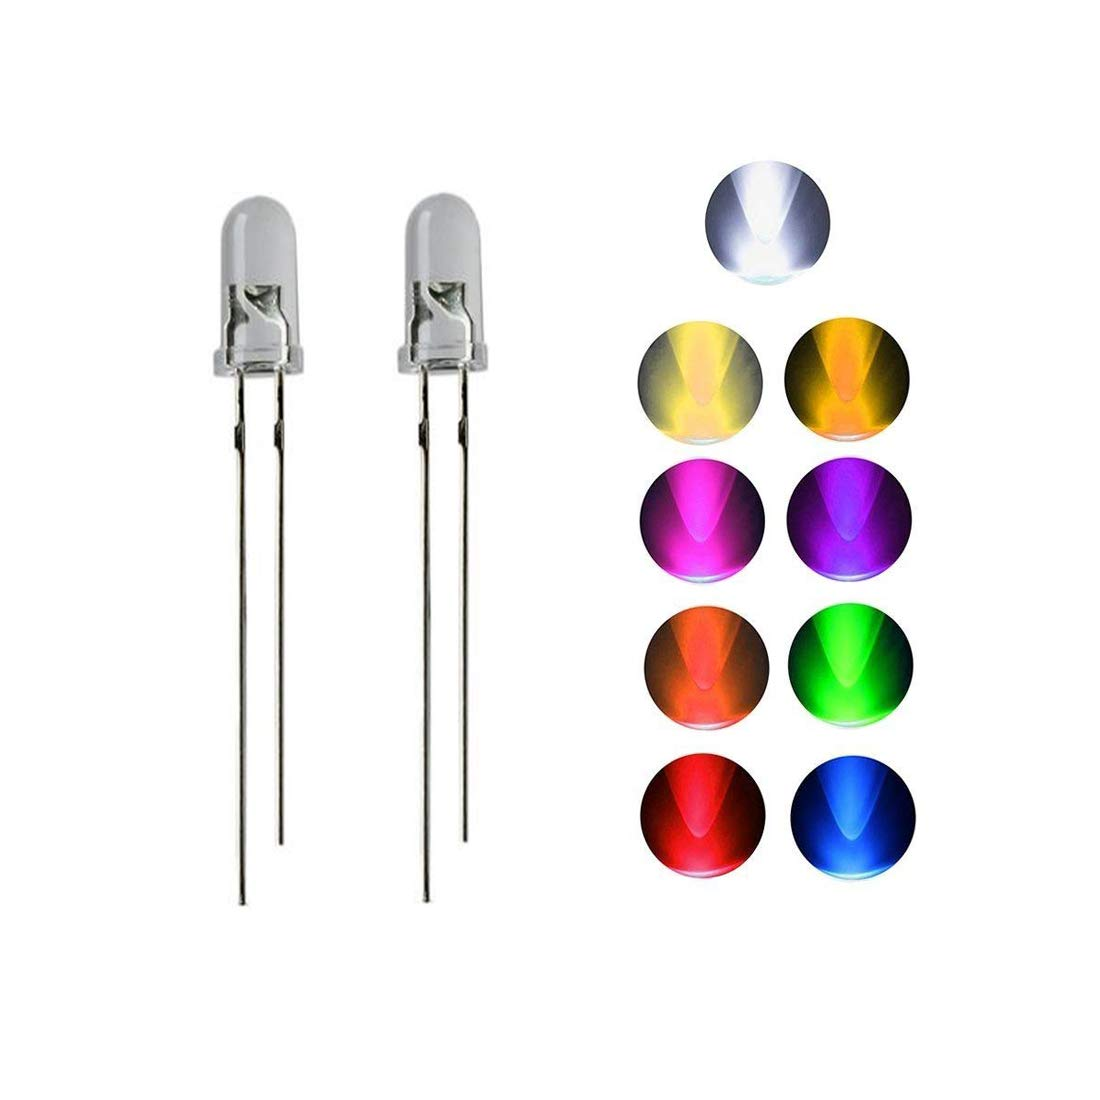 uxcell/® 10mm Clear Cylinder Emitting Diode 2 Pin Green Light LED Lamp 50pcs